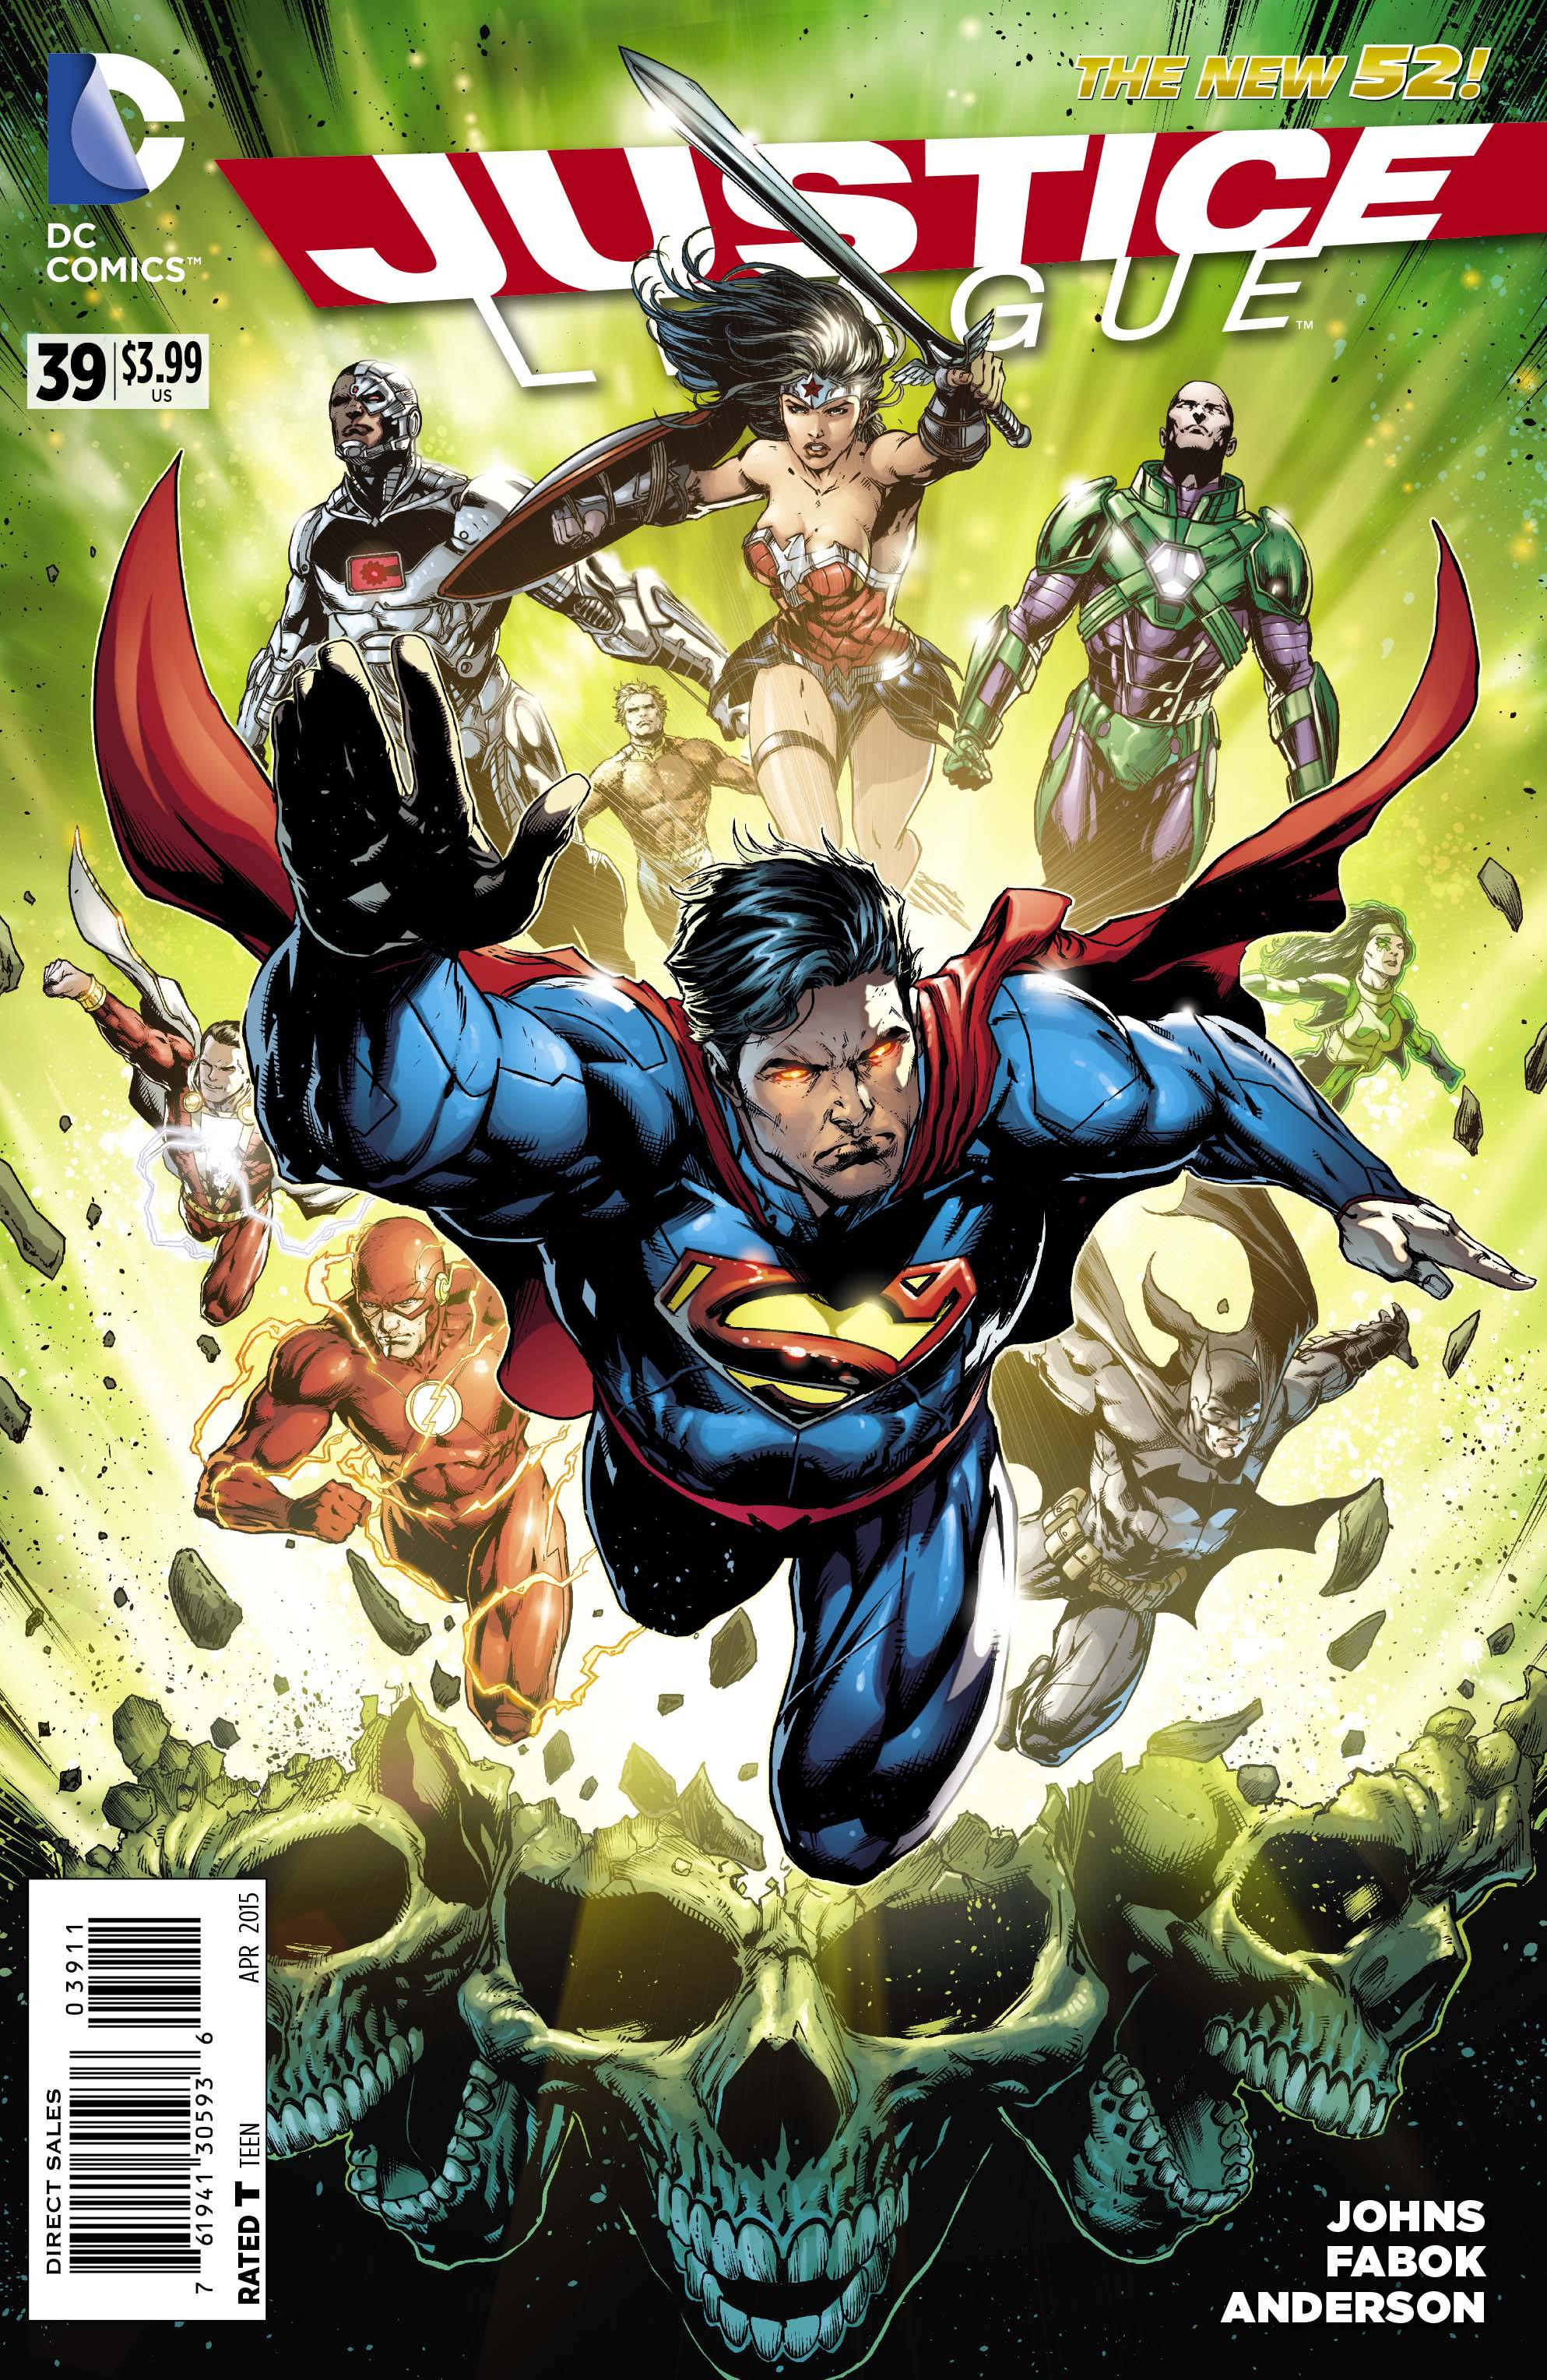 Justice League New 52 Covers